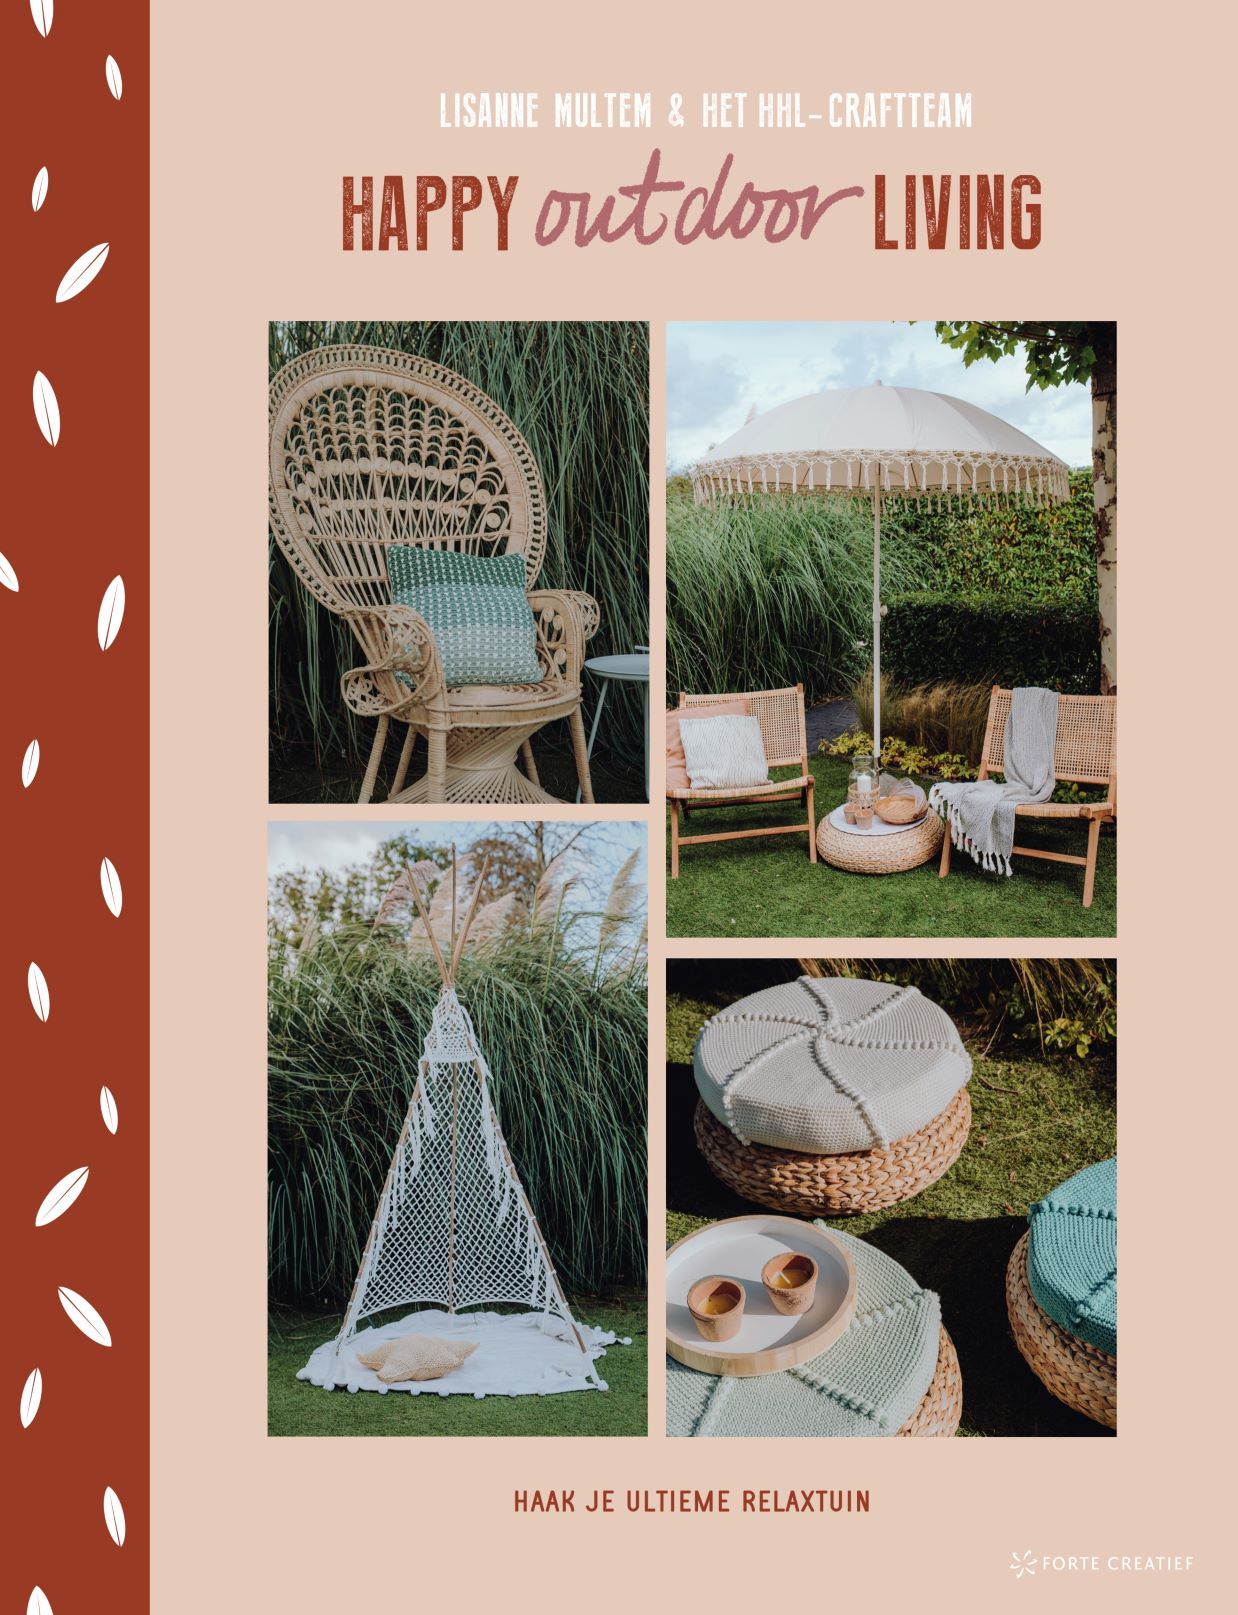 Happy-Outdoor-Living-vp-LR.jpg